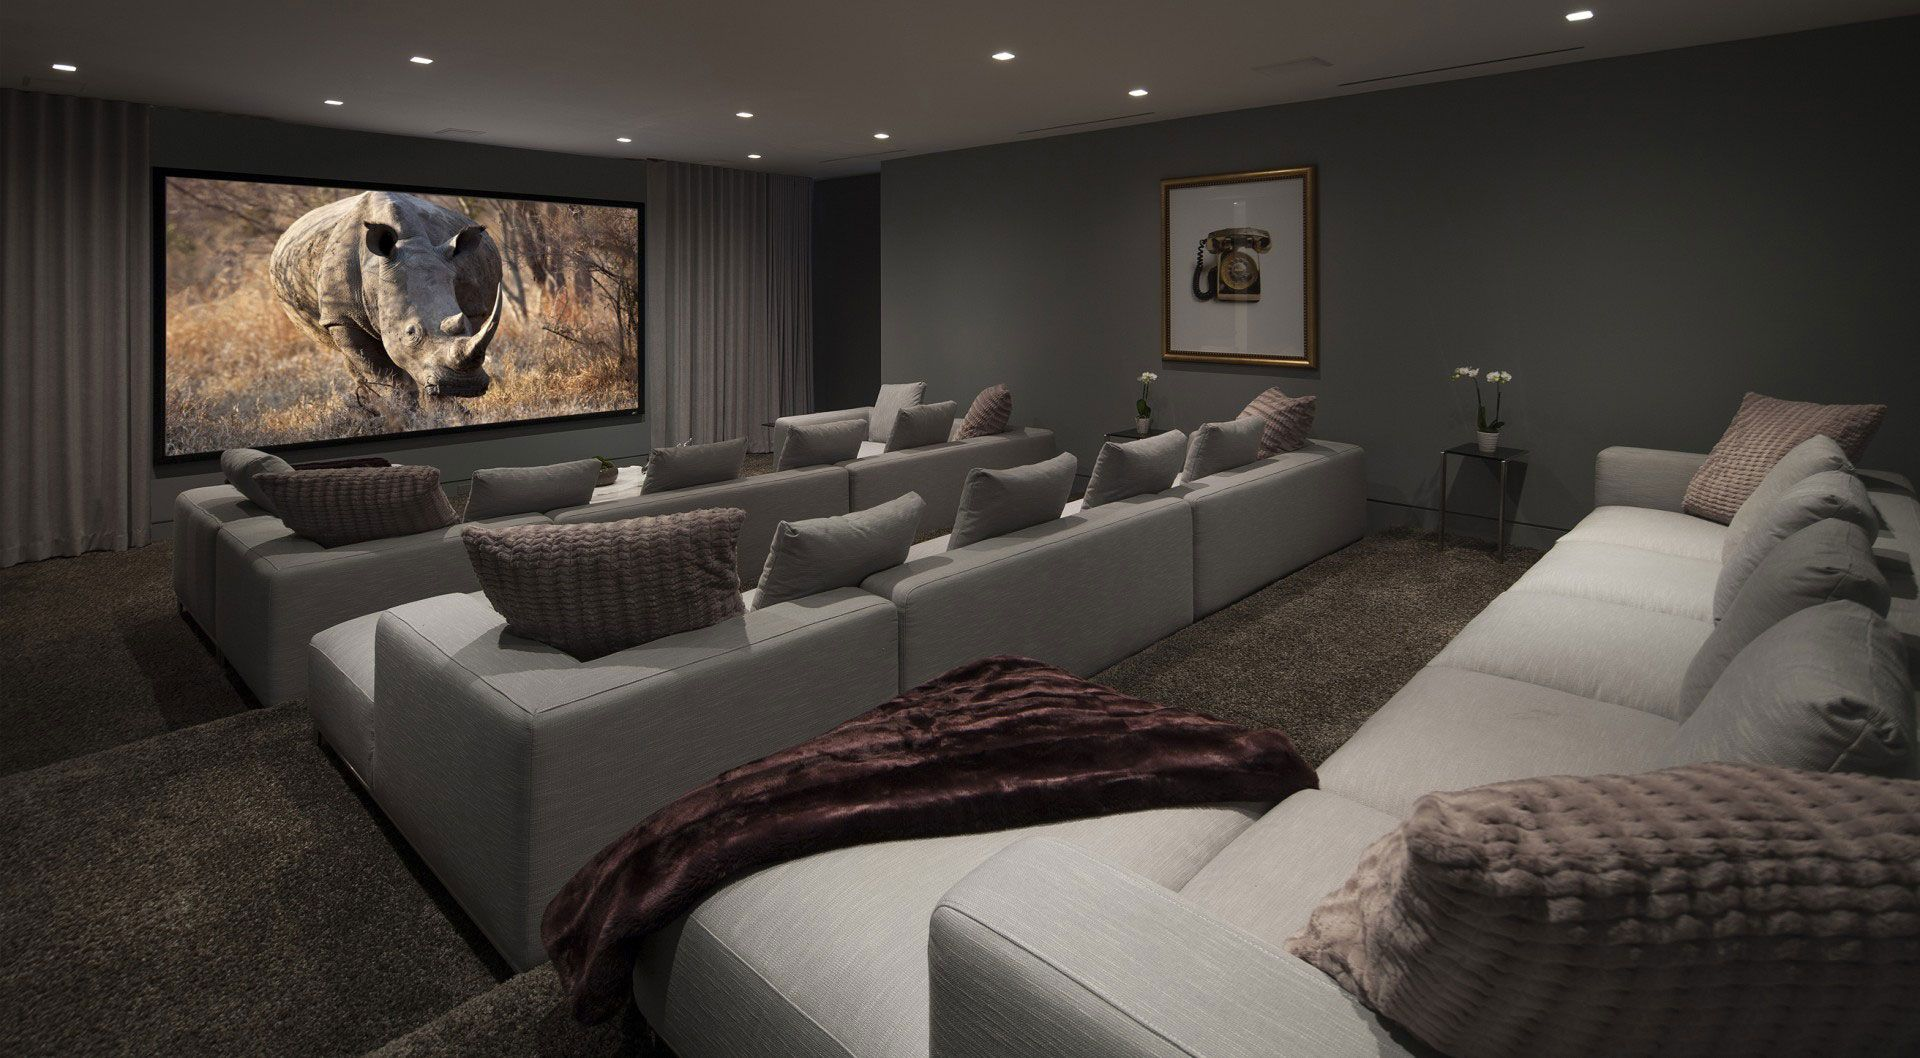 Modern Spacious Home Cinema Room Design Ideas With Grey Comfy Couch And Theater Luxury Mansion In Hollywood Oriole Way By McClean